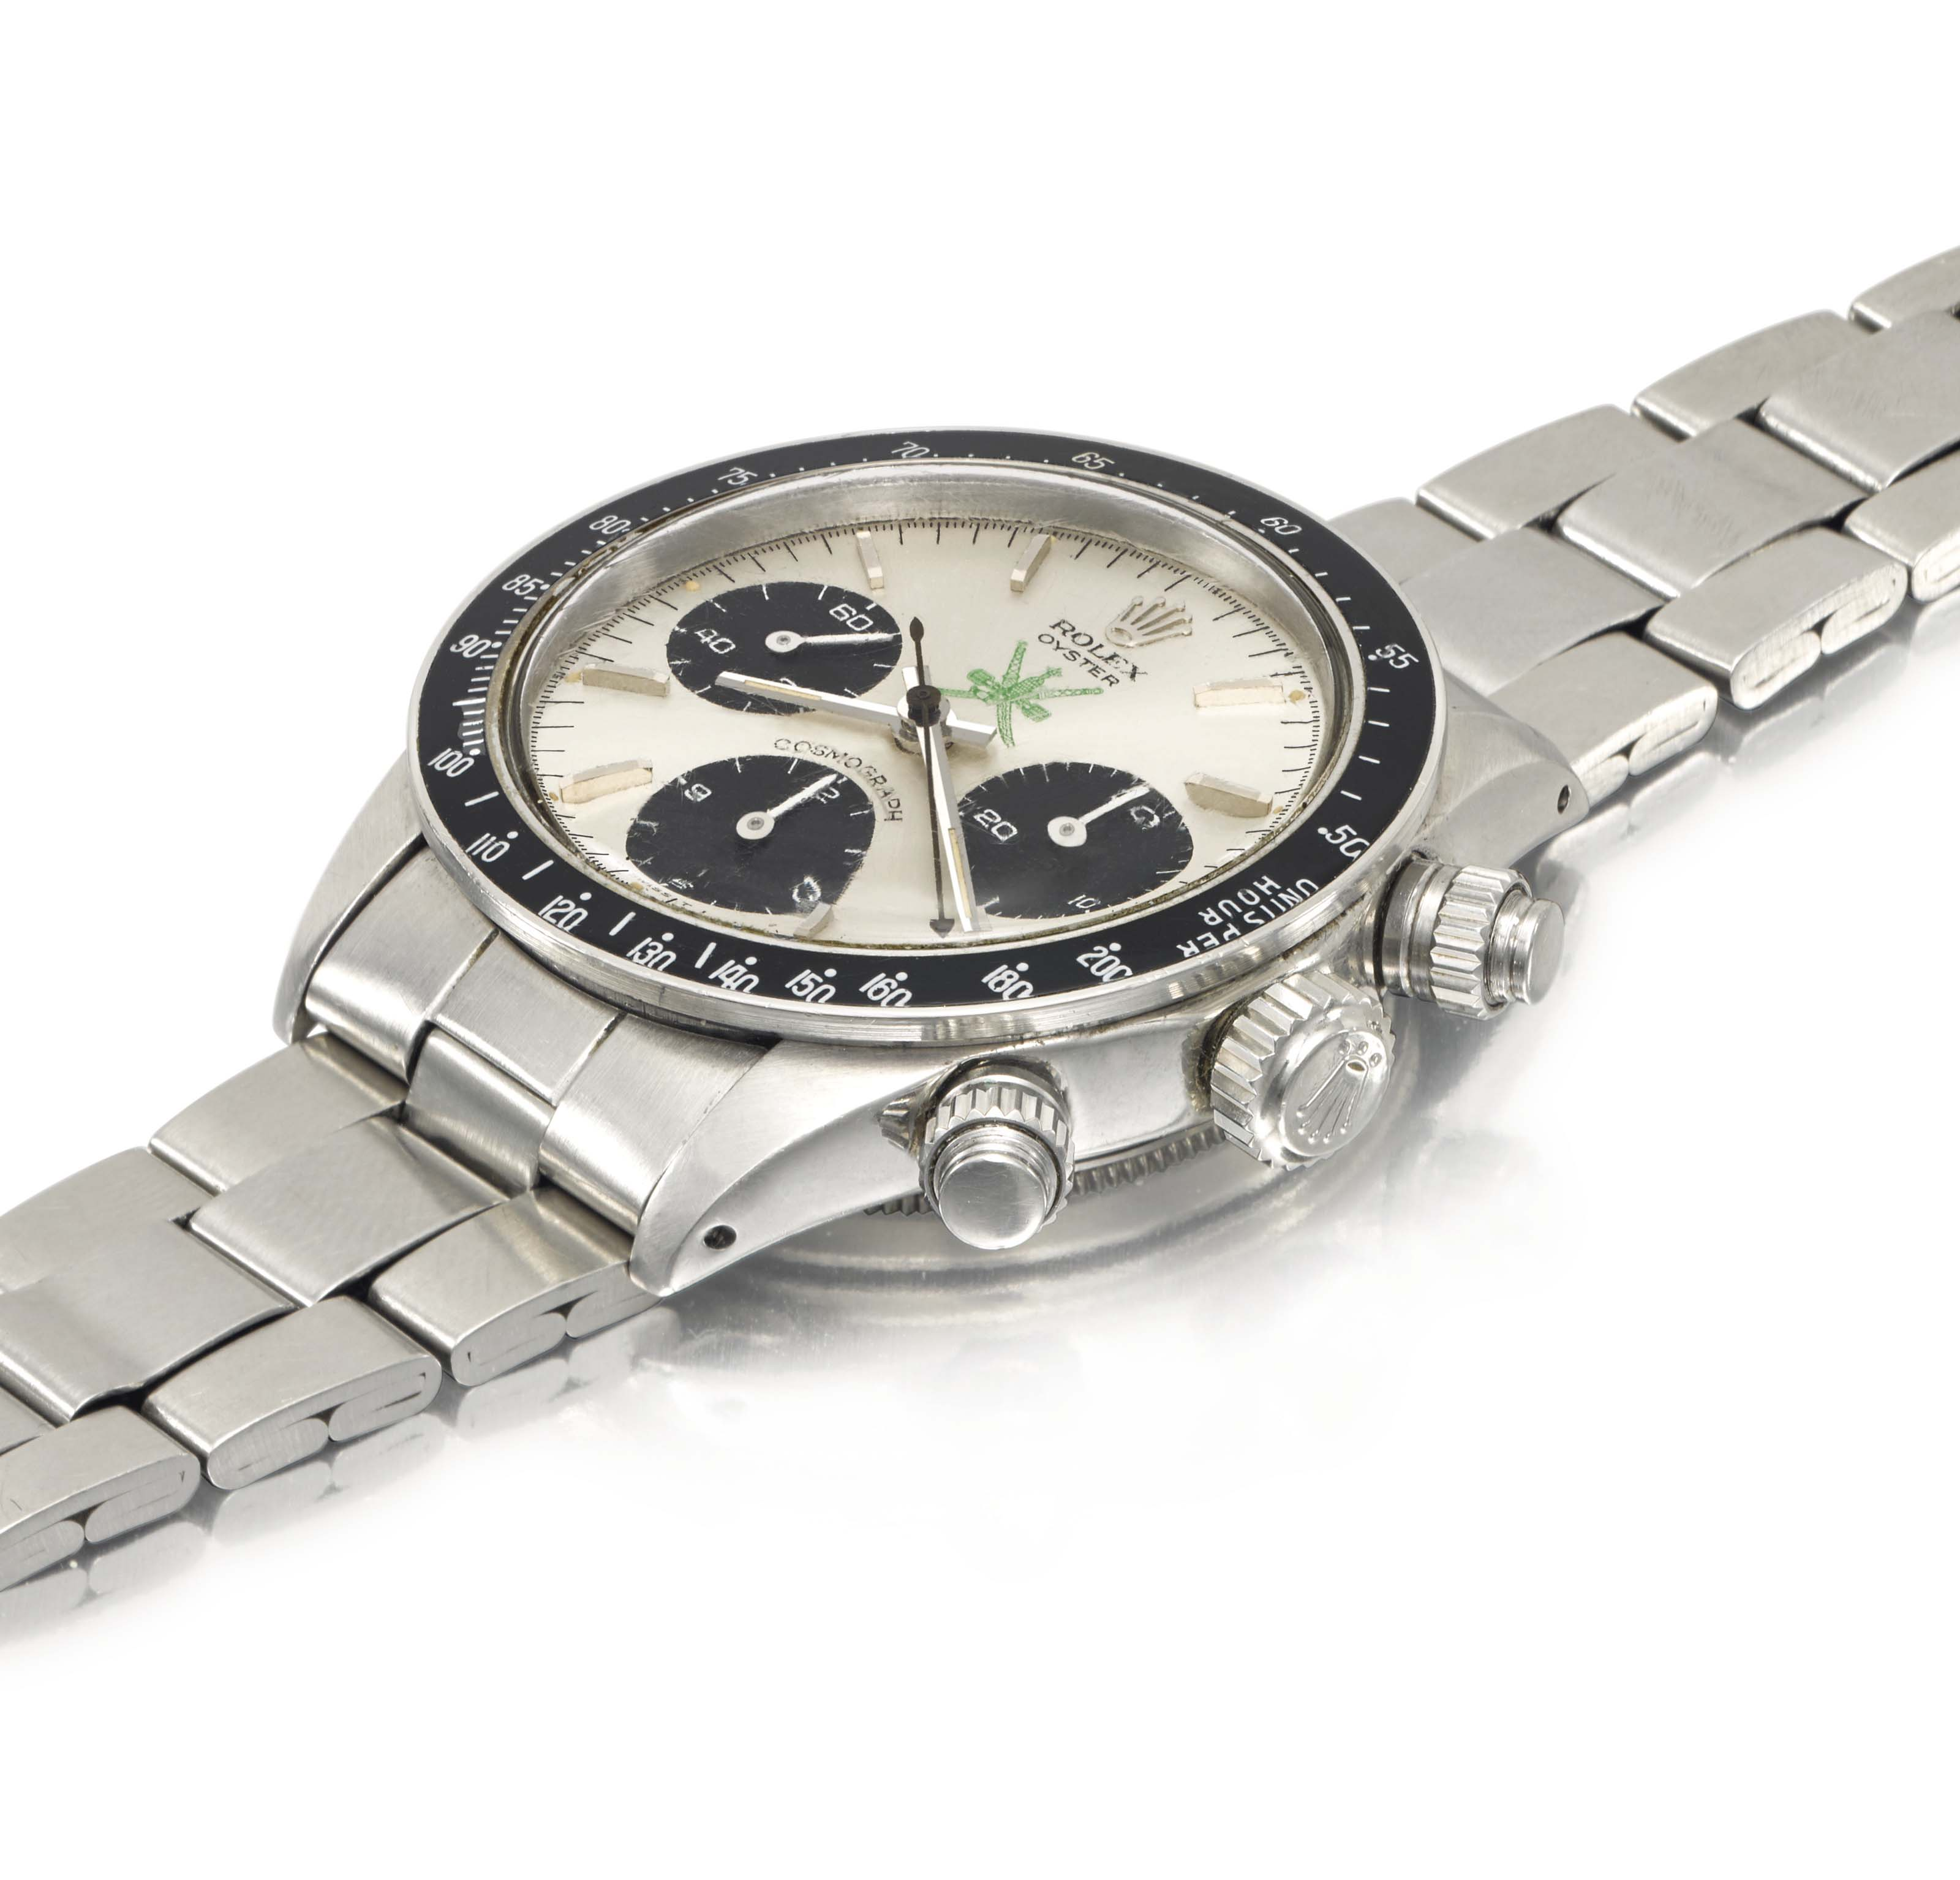 Rolex. An exceptionally rare stainless steel chronograph wristwatch with green «Khanjar» symbol, presented by the Sultan of Oman to the current owner in 1974, sold with the original sales tag, box, period blank guarantee and brochures